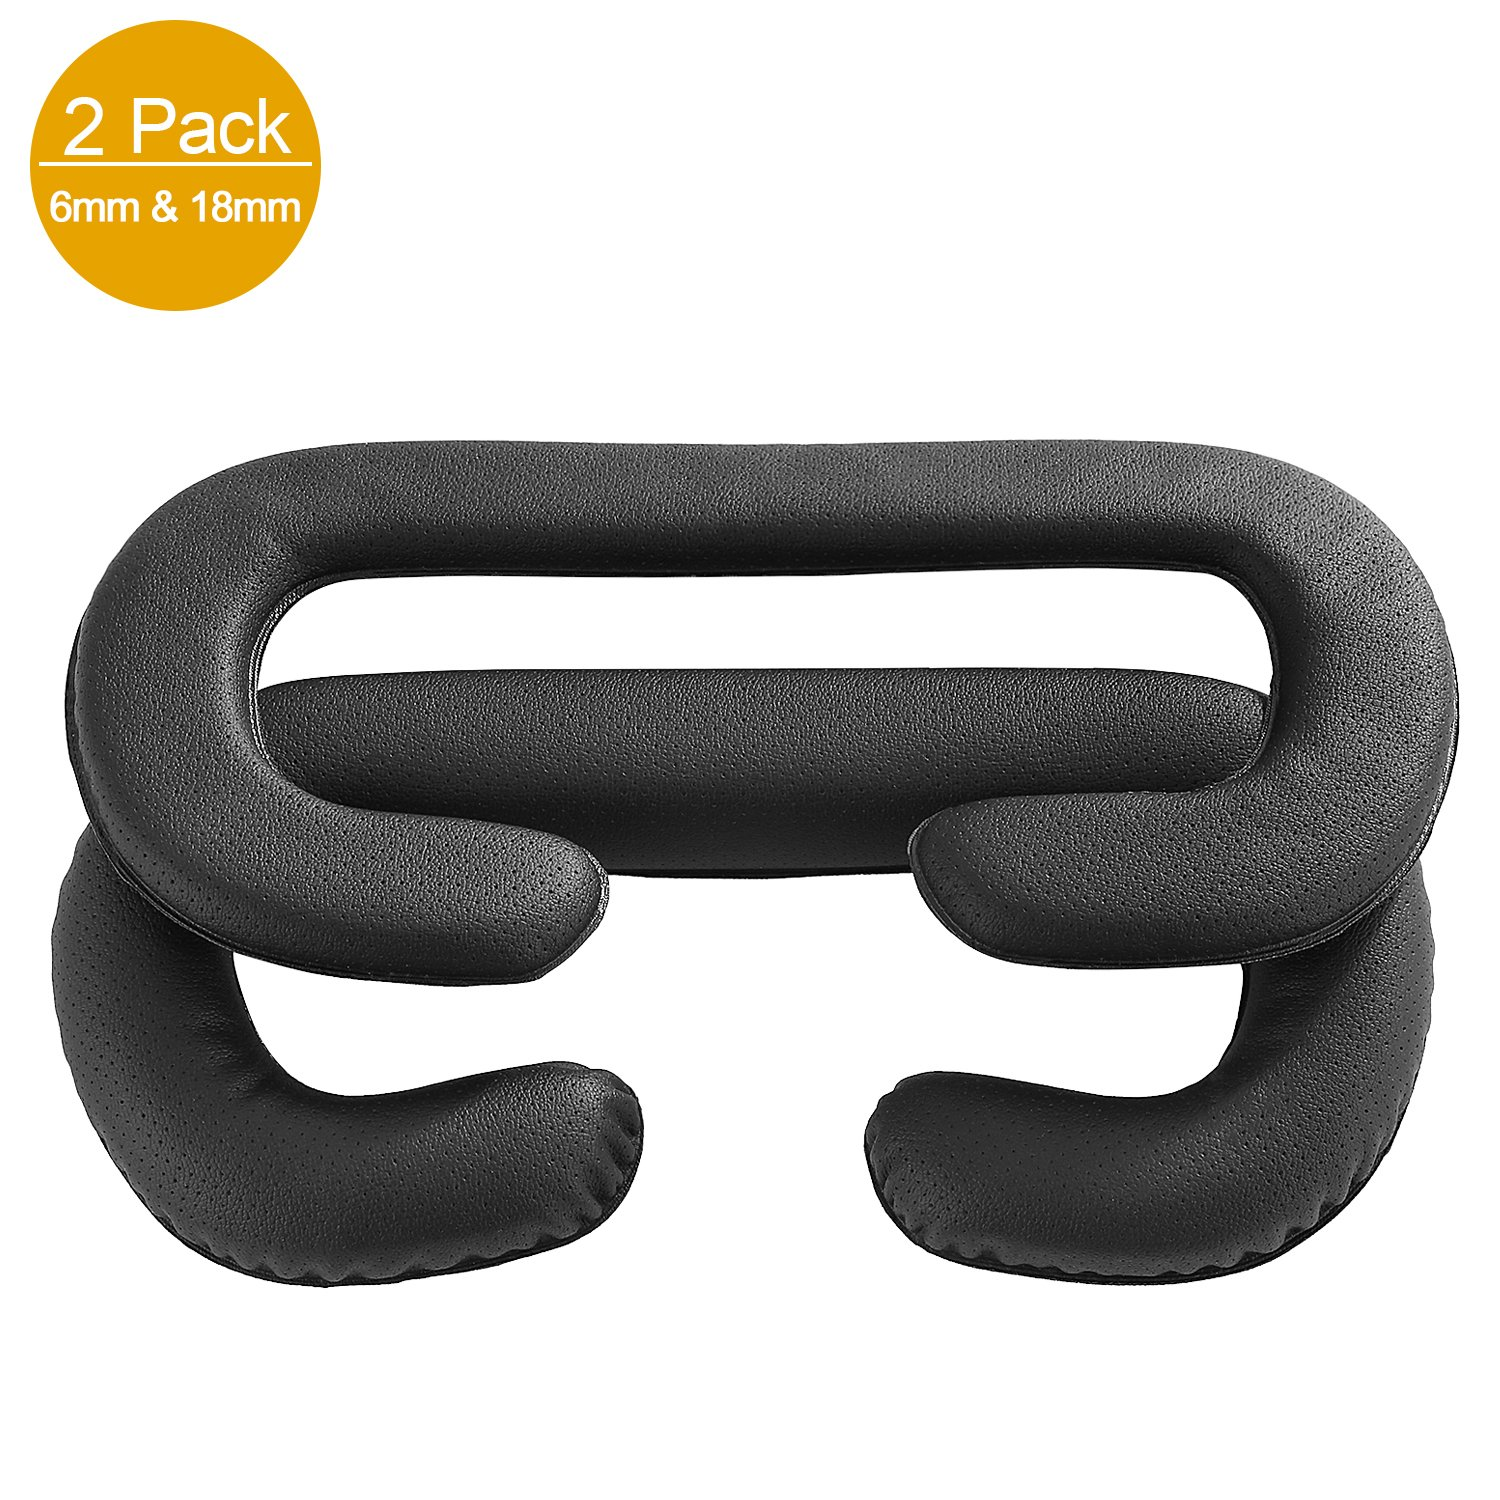 HTC Vive VR Face Cover, JARMOR Replacement Eye Mask Pad with Memory Foam & PU Leather [Better FOV] [2 PACK, 6MM & 18MM] - Black